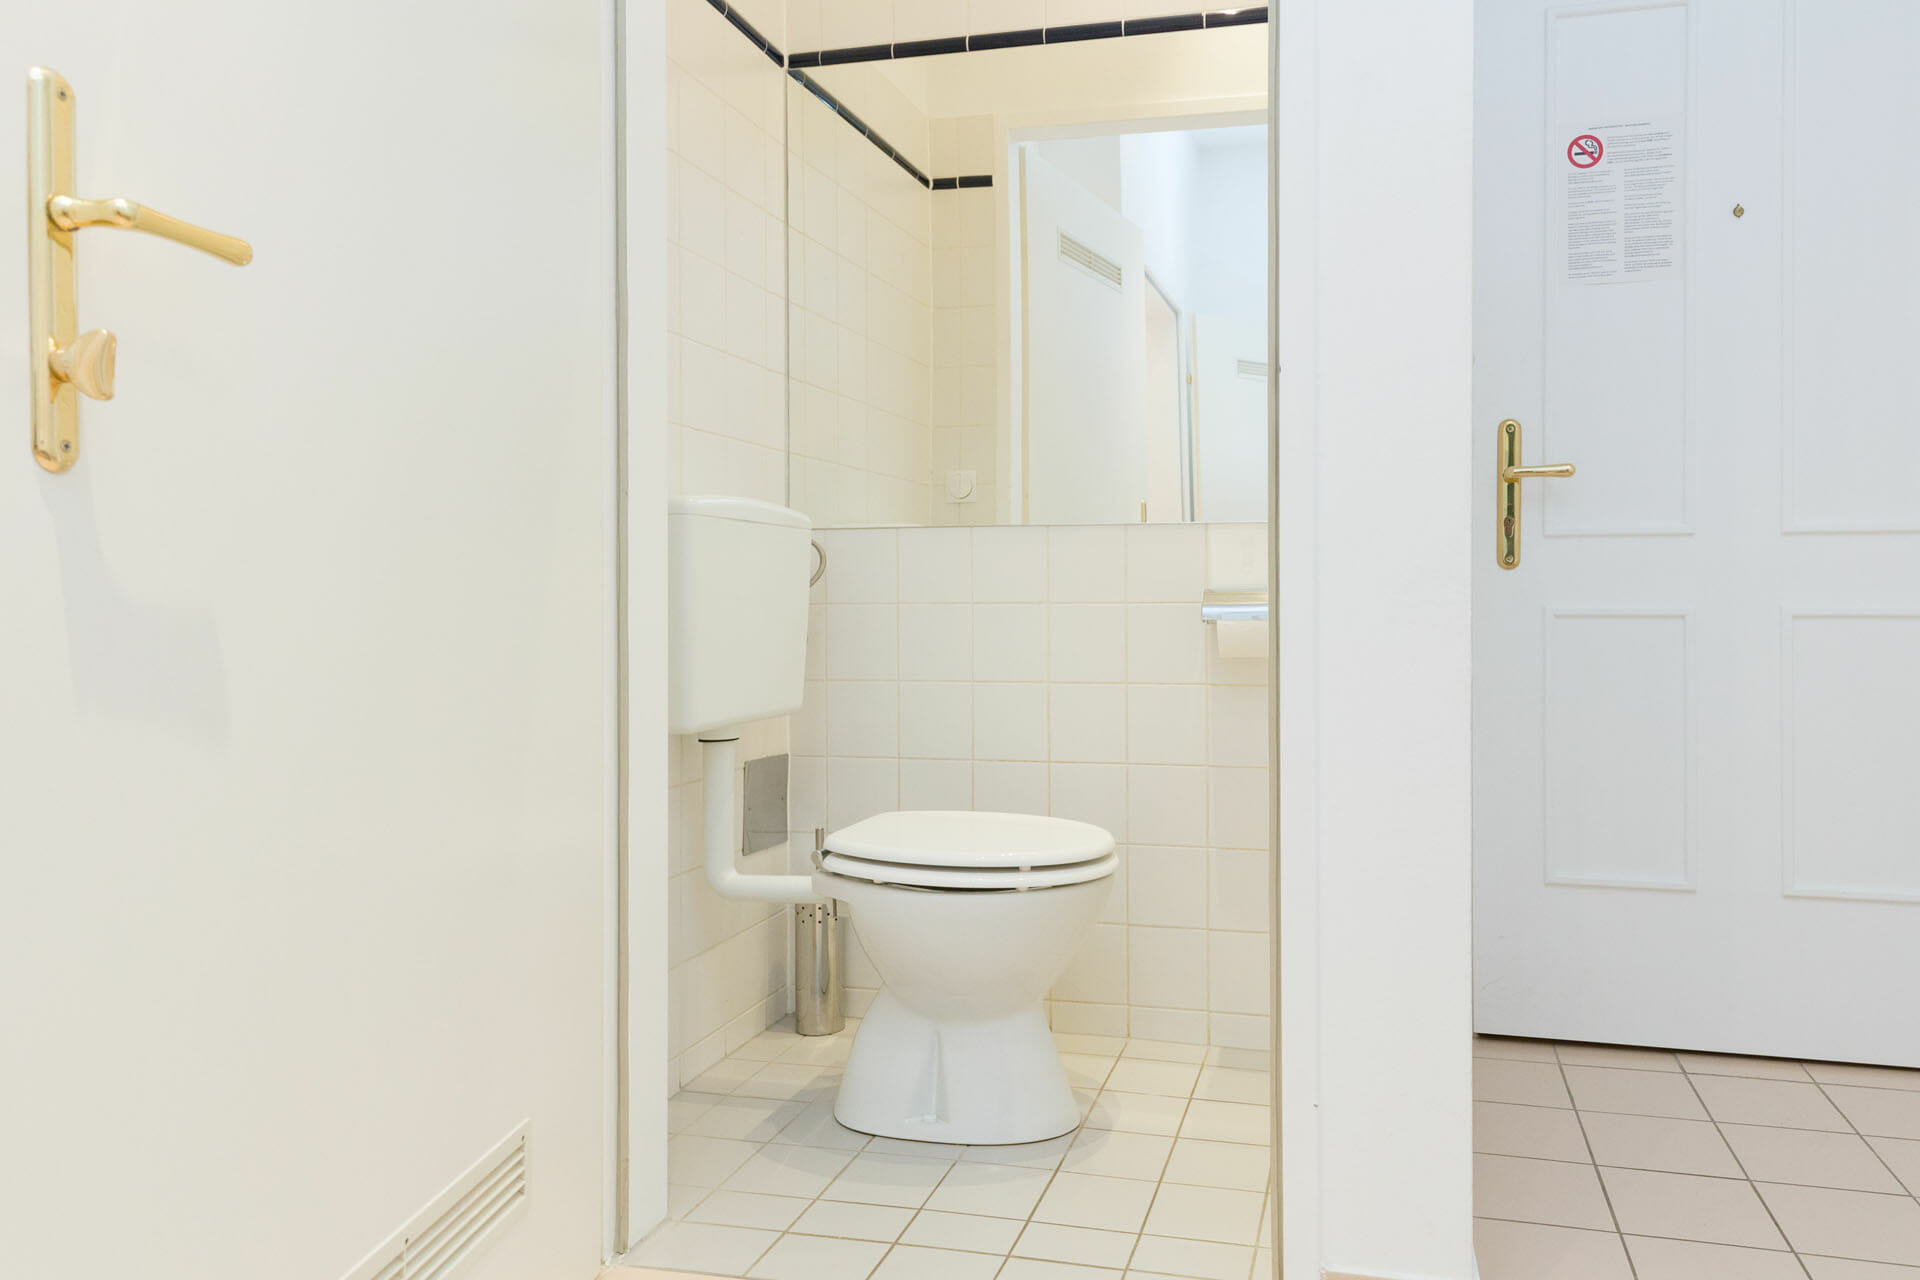 Prestige Apartments in Vienna Austria. Alser Strasse 14. Cosy studio apartment in the heart of Vienna. The apartment is located on the second hallway on the mezzanin floor and is facing the very quiet backyard. The open plan kitchen is separated from the living bedroom.